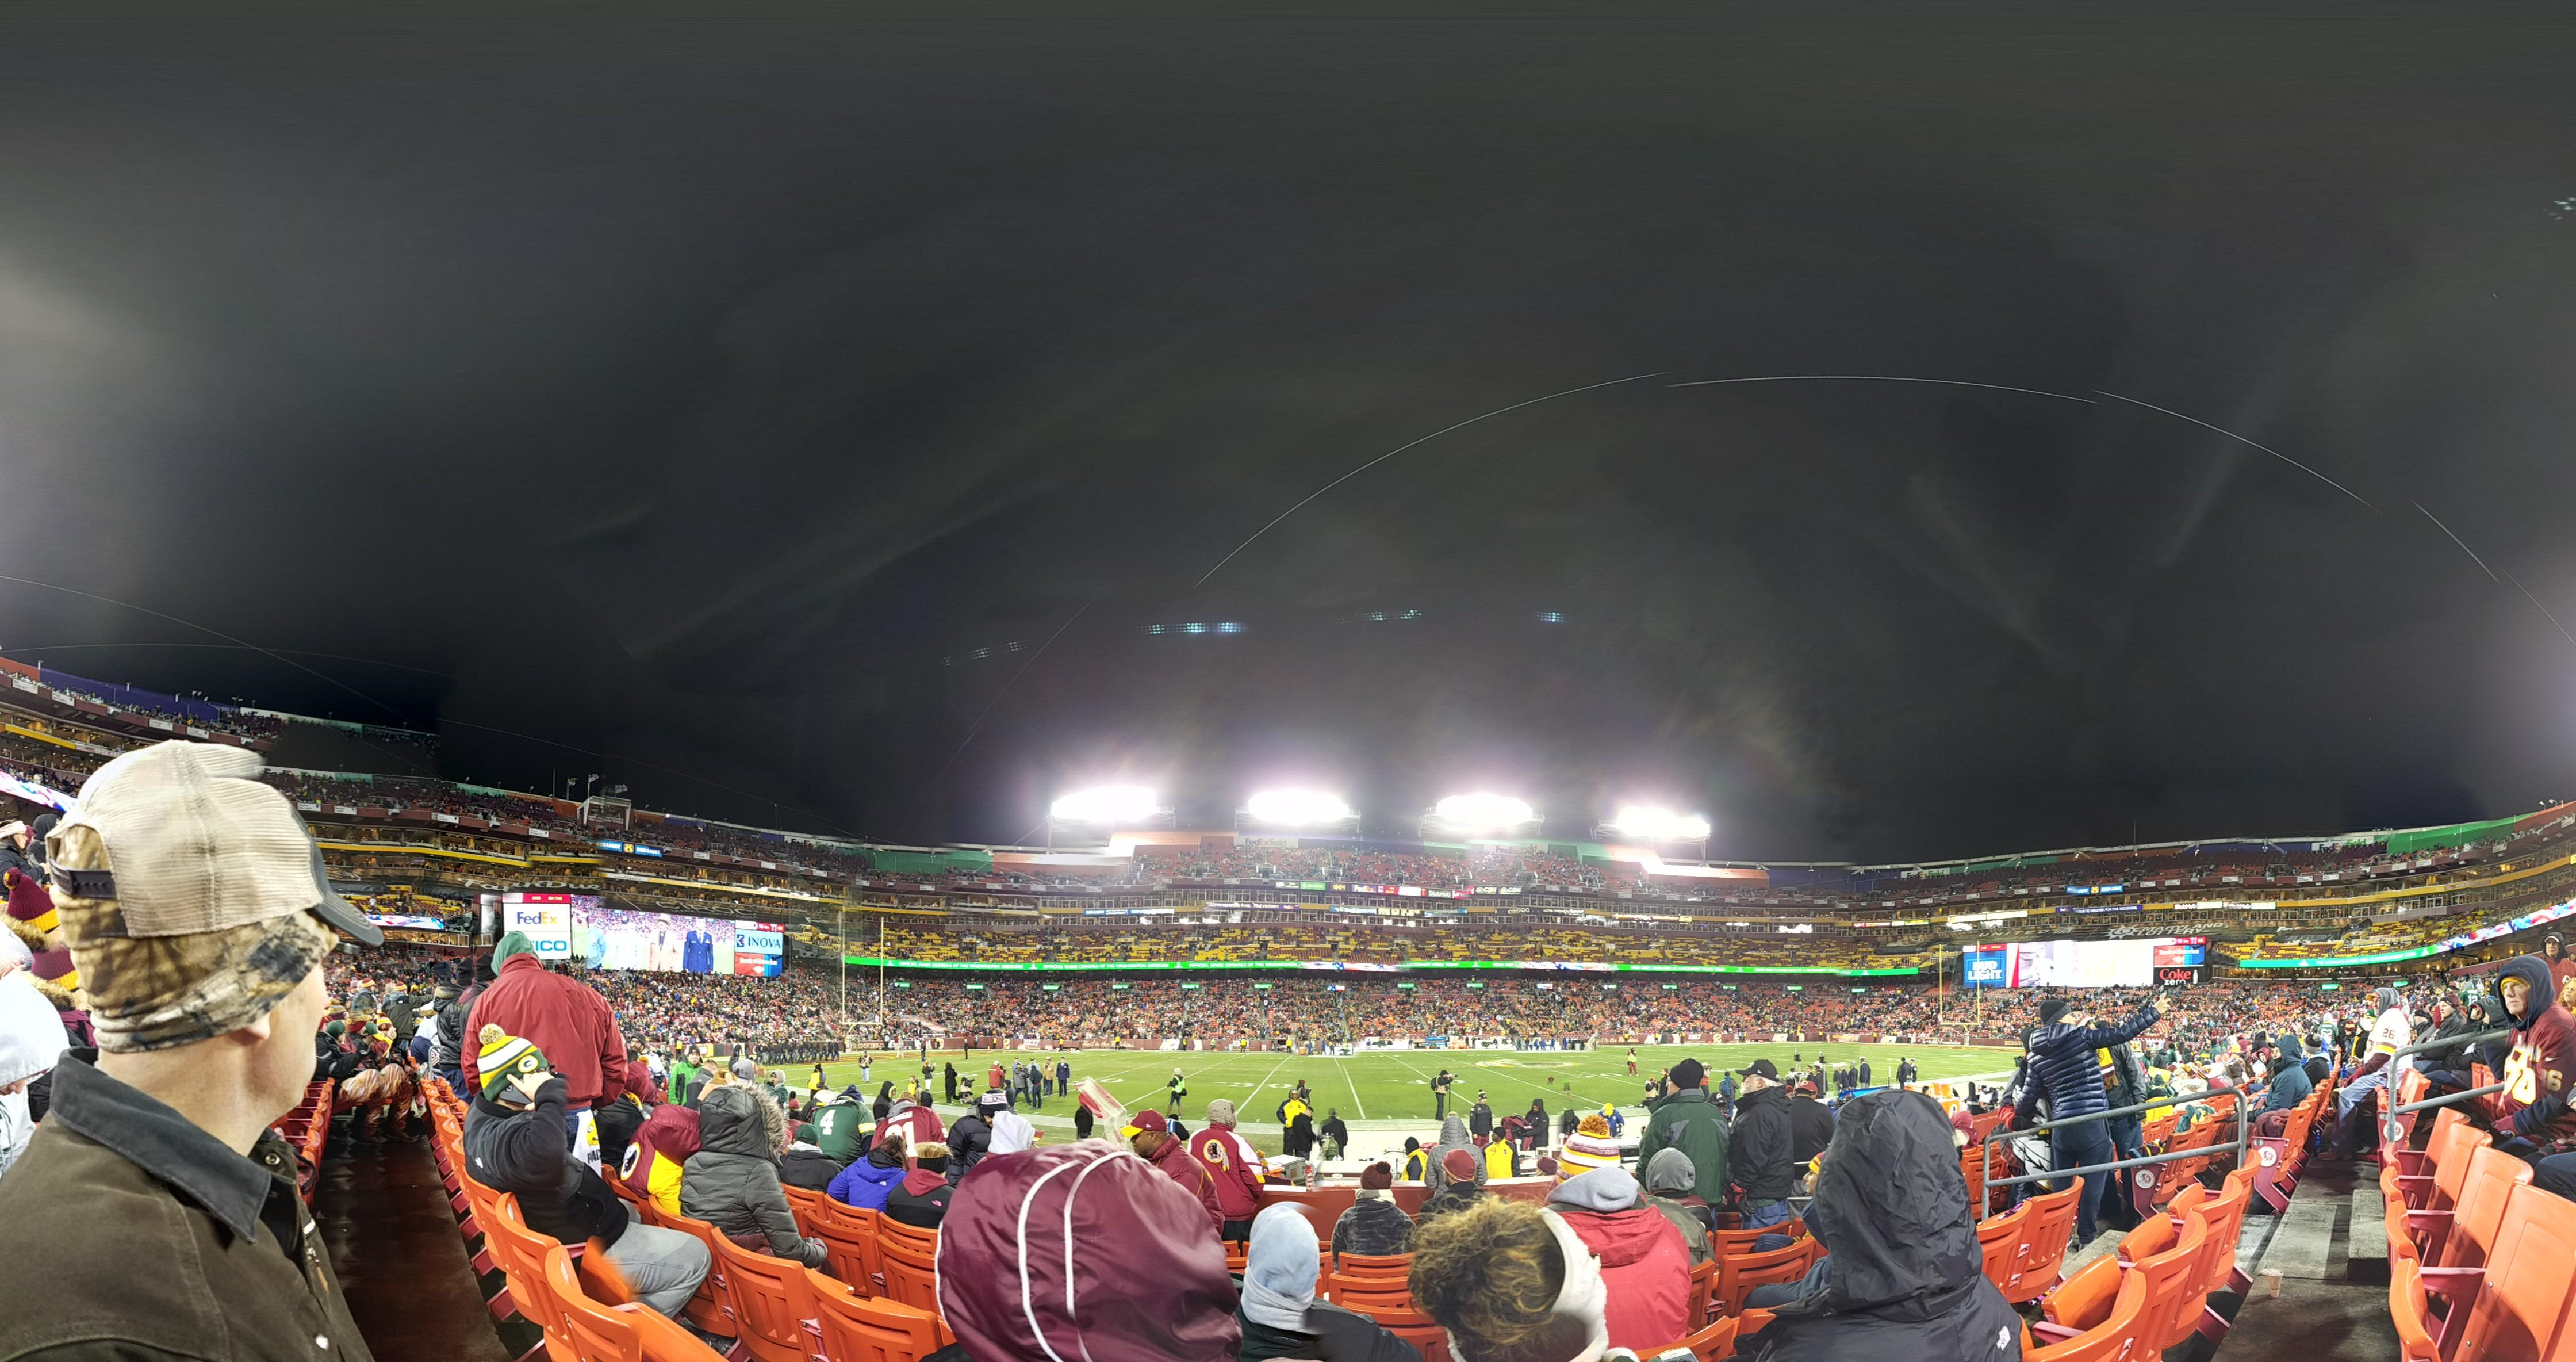 FedEx Field Section 120 Row 7 Seat 8